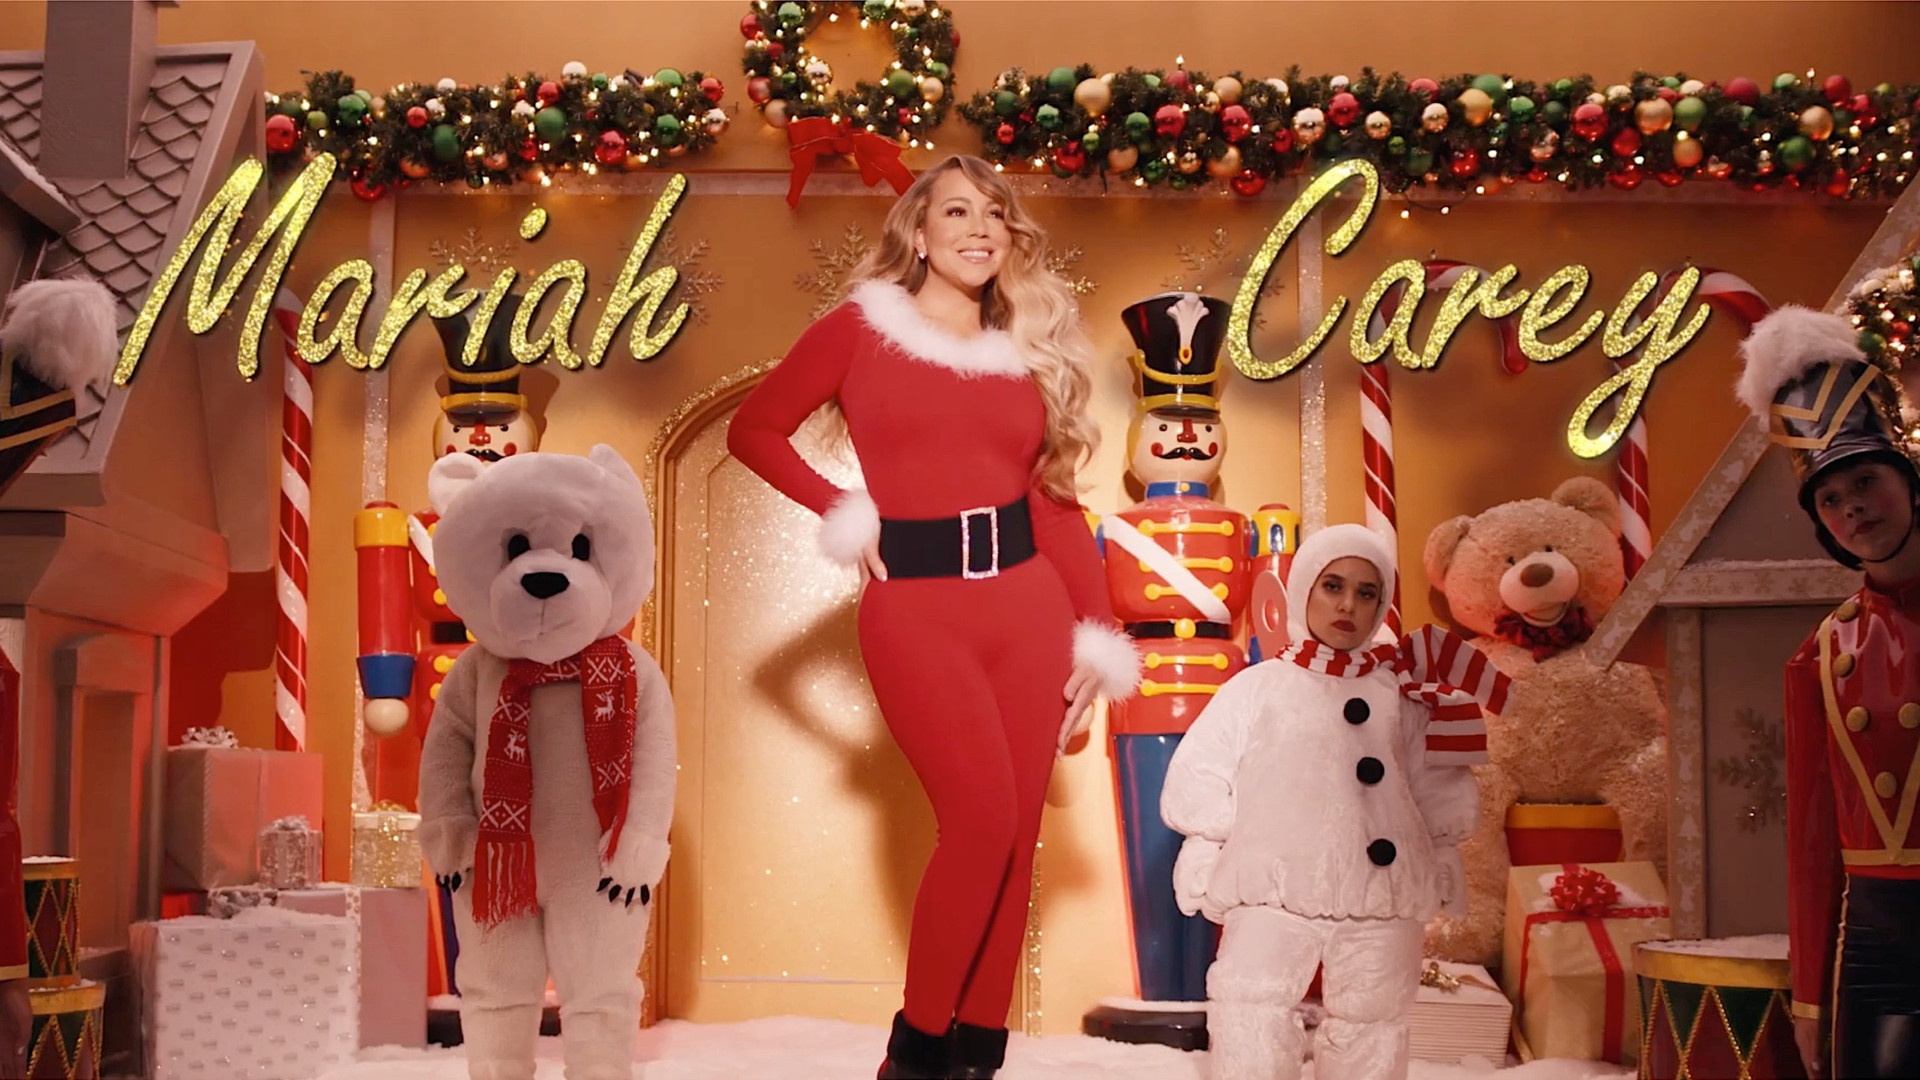 Mariah Carey - Christmas.jpg